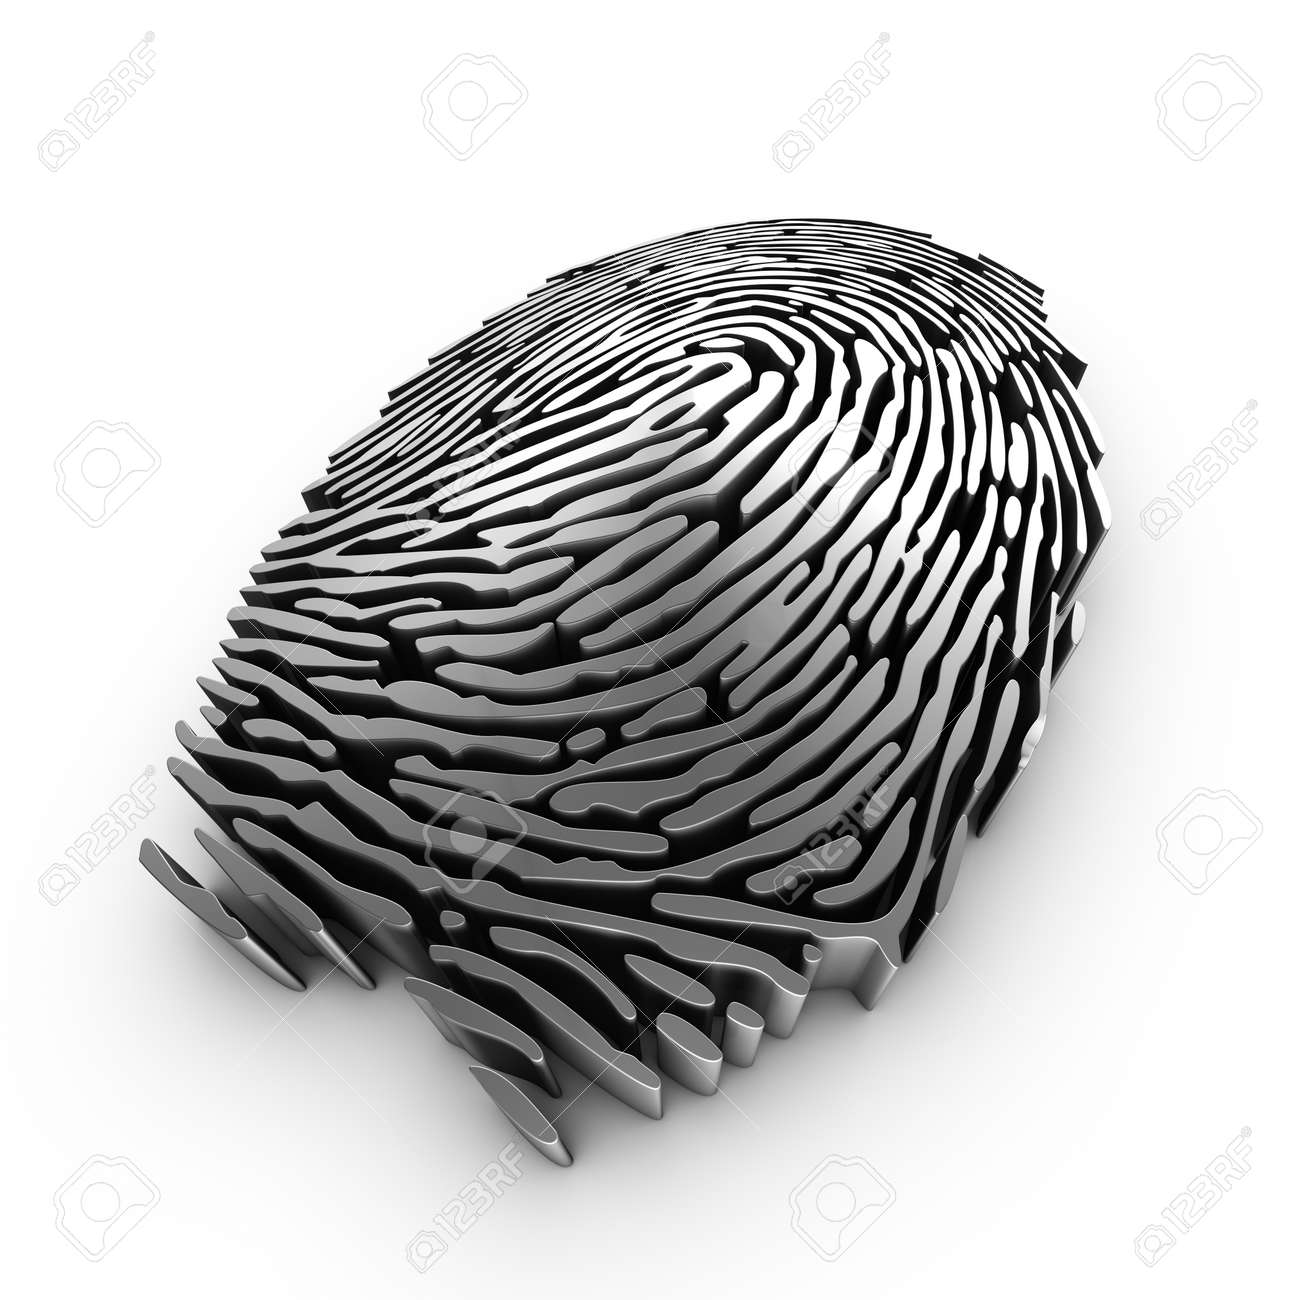 3d fingerprint representation for authentication or recognition Stock Photo - 7970740